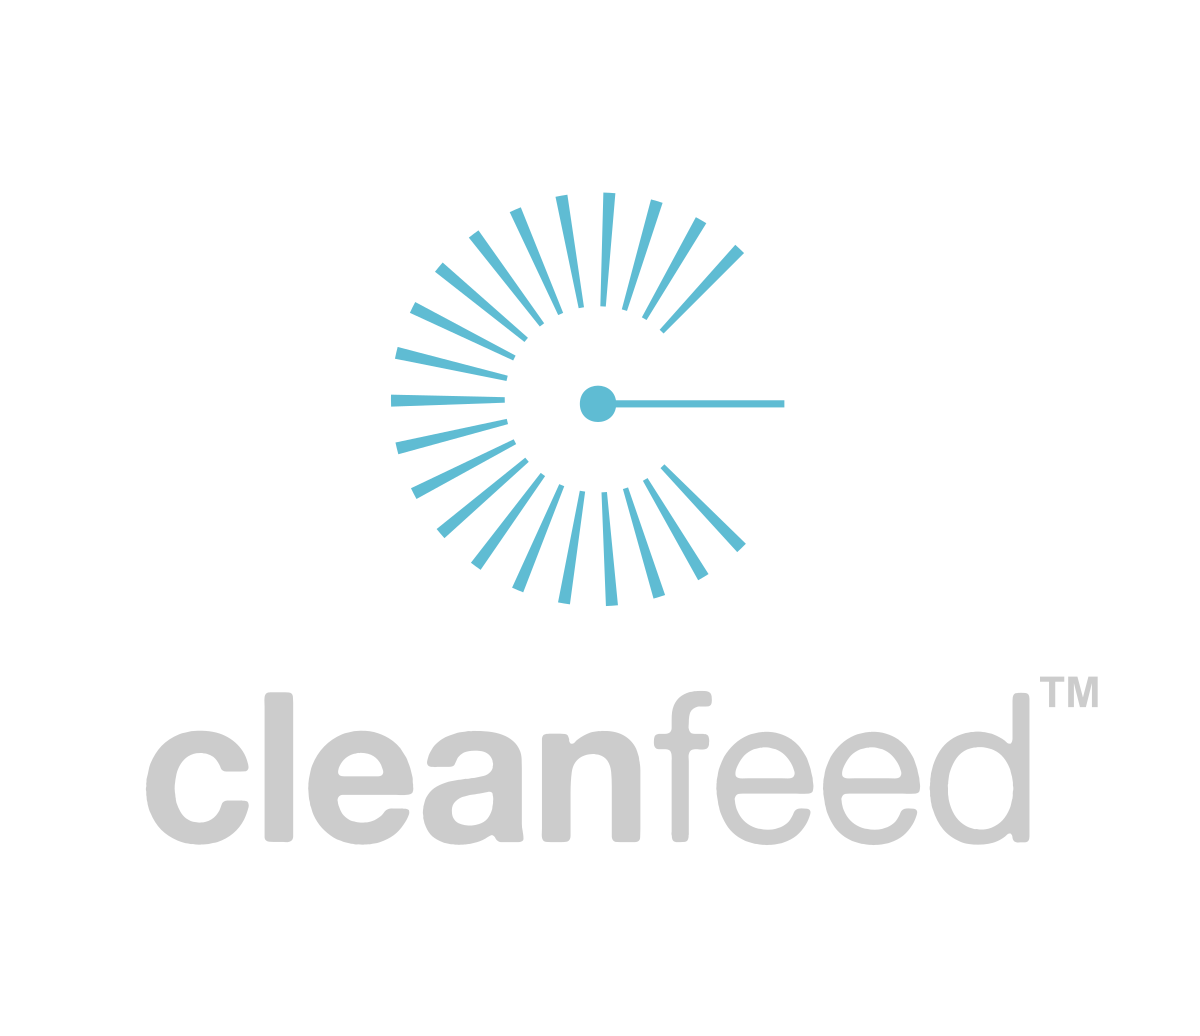 Cleanfeed logo